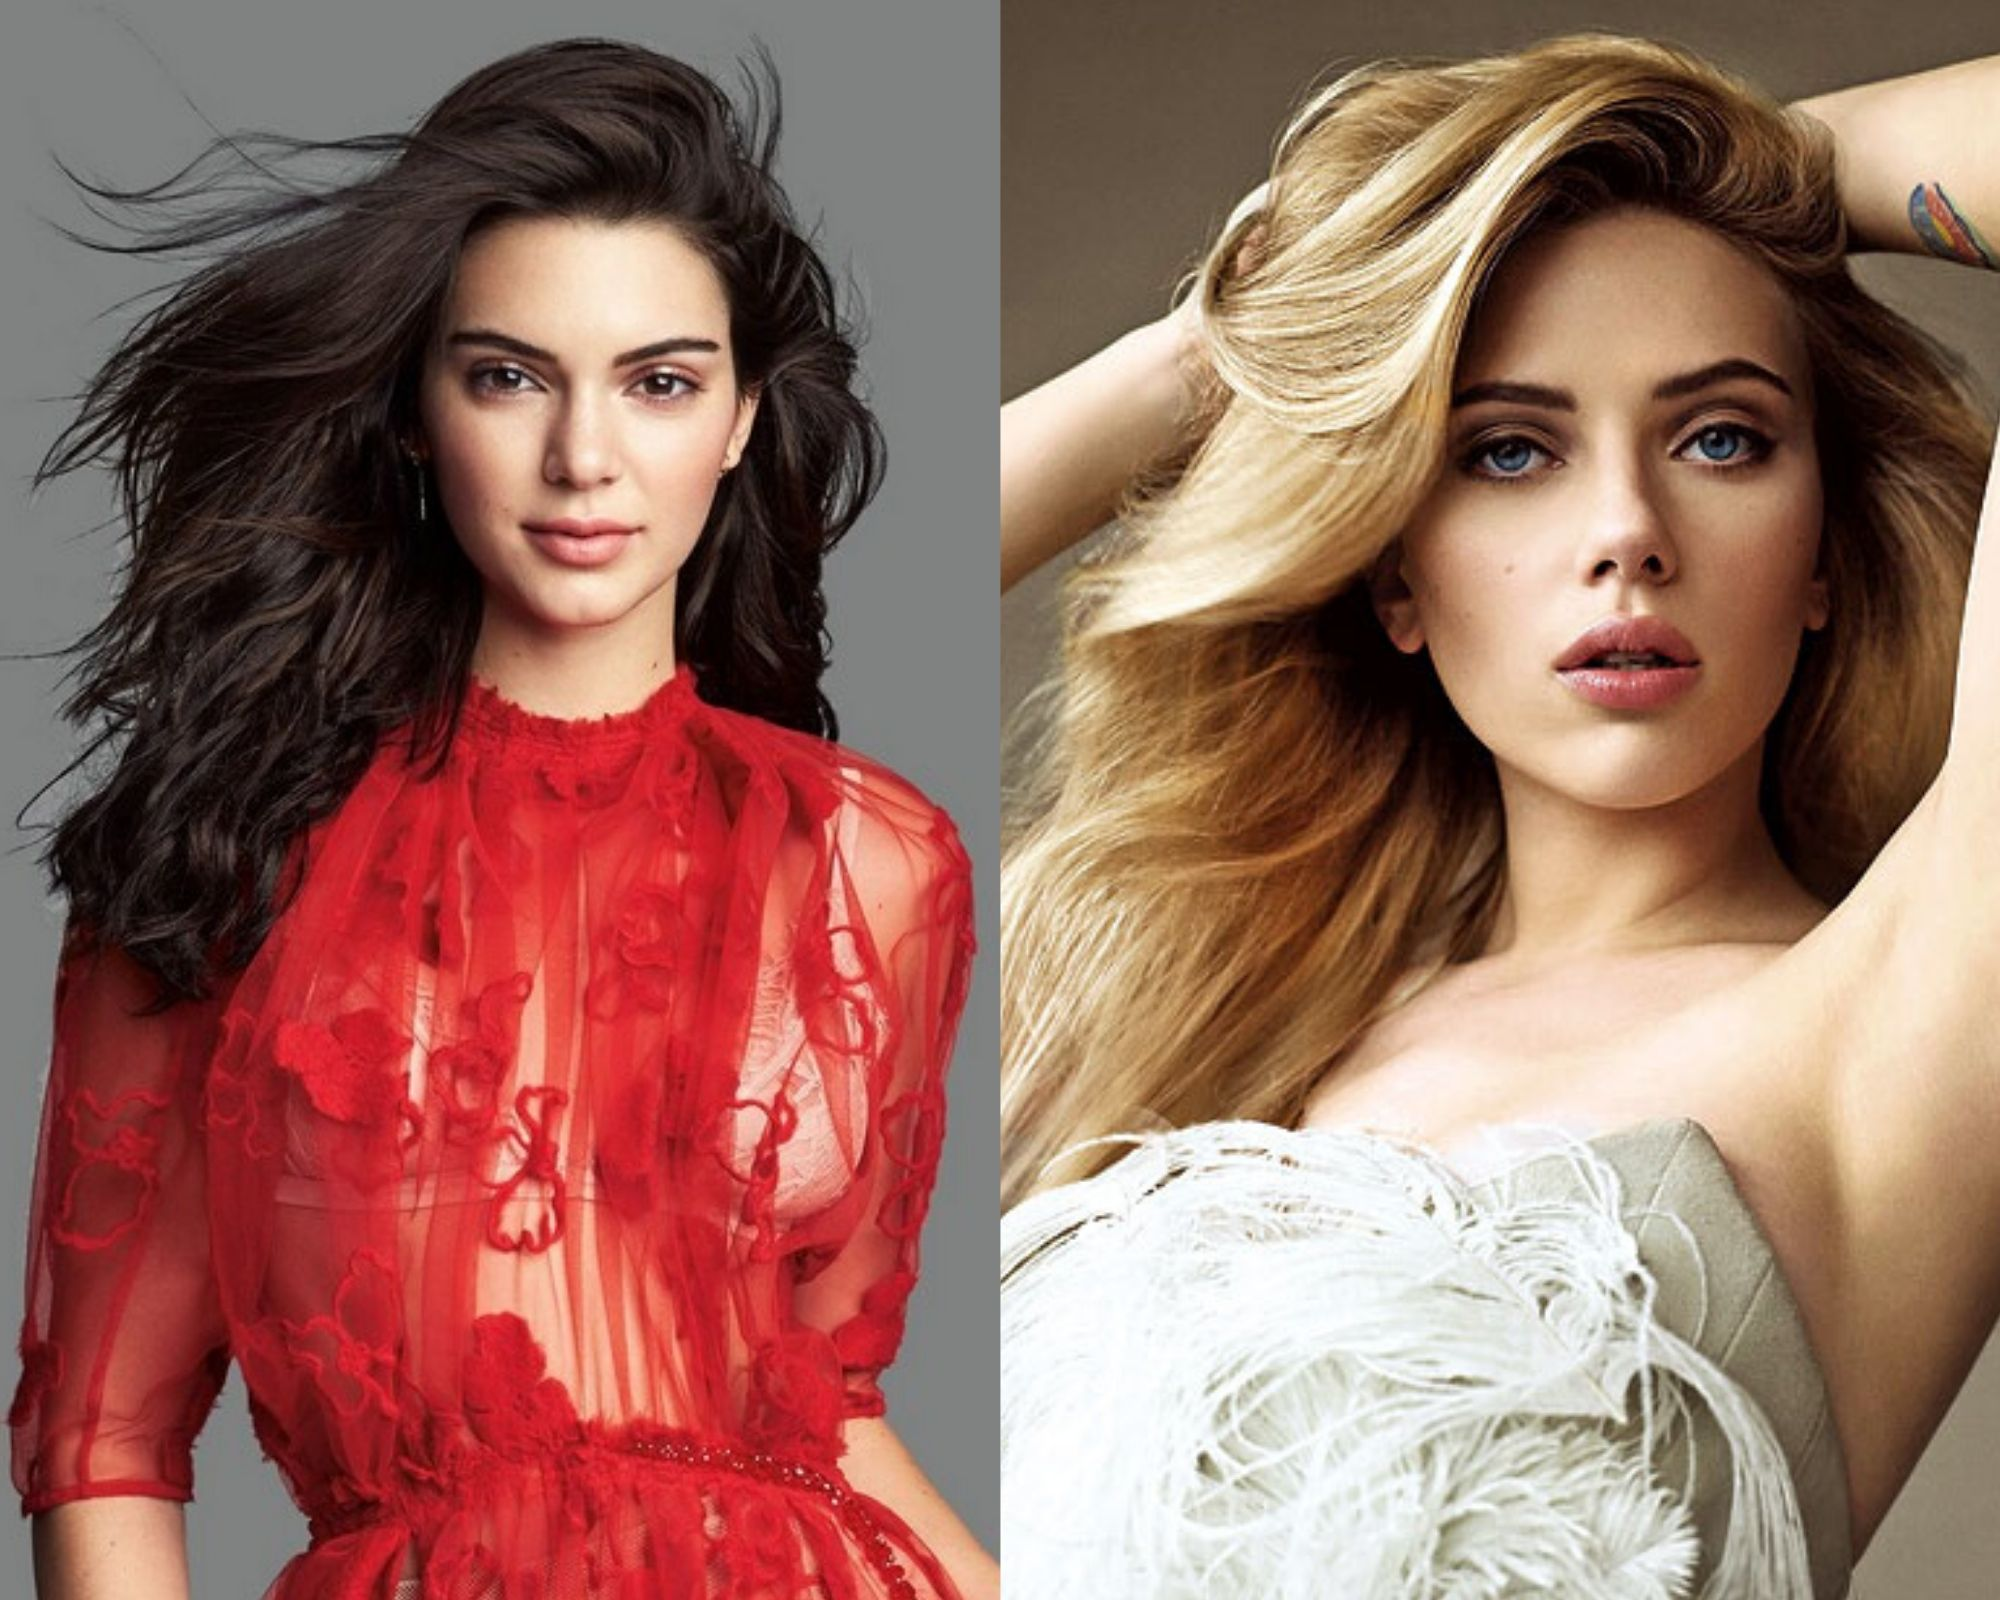 Top 10 Sexiest Women in the World 2020: Checkout!